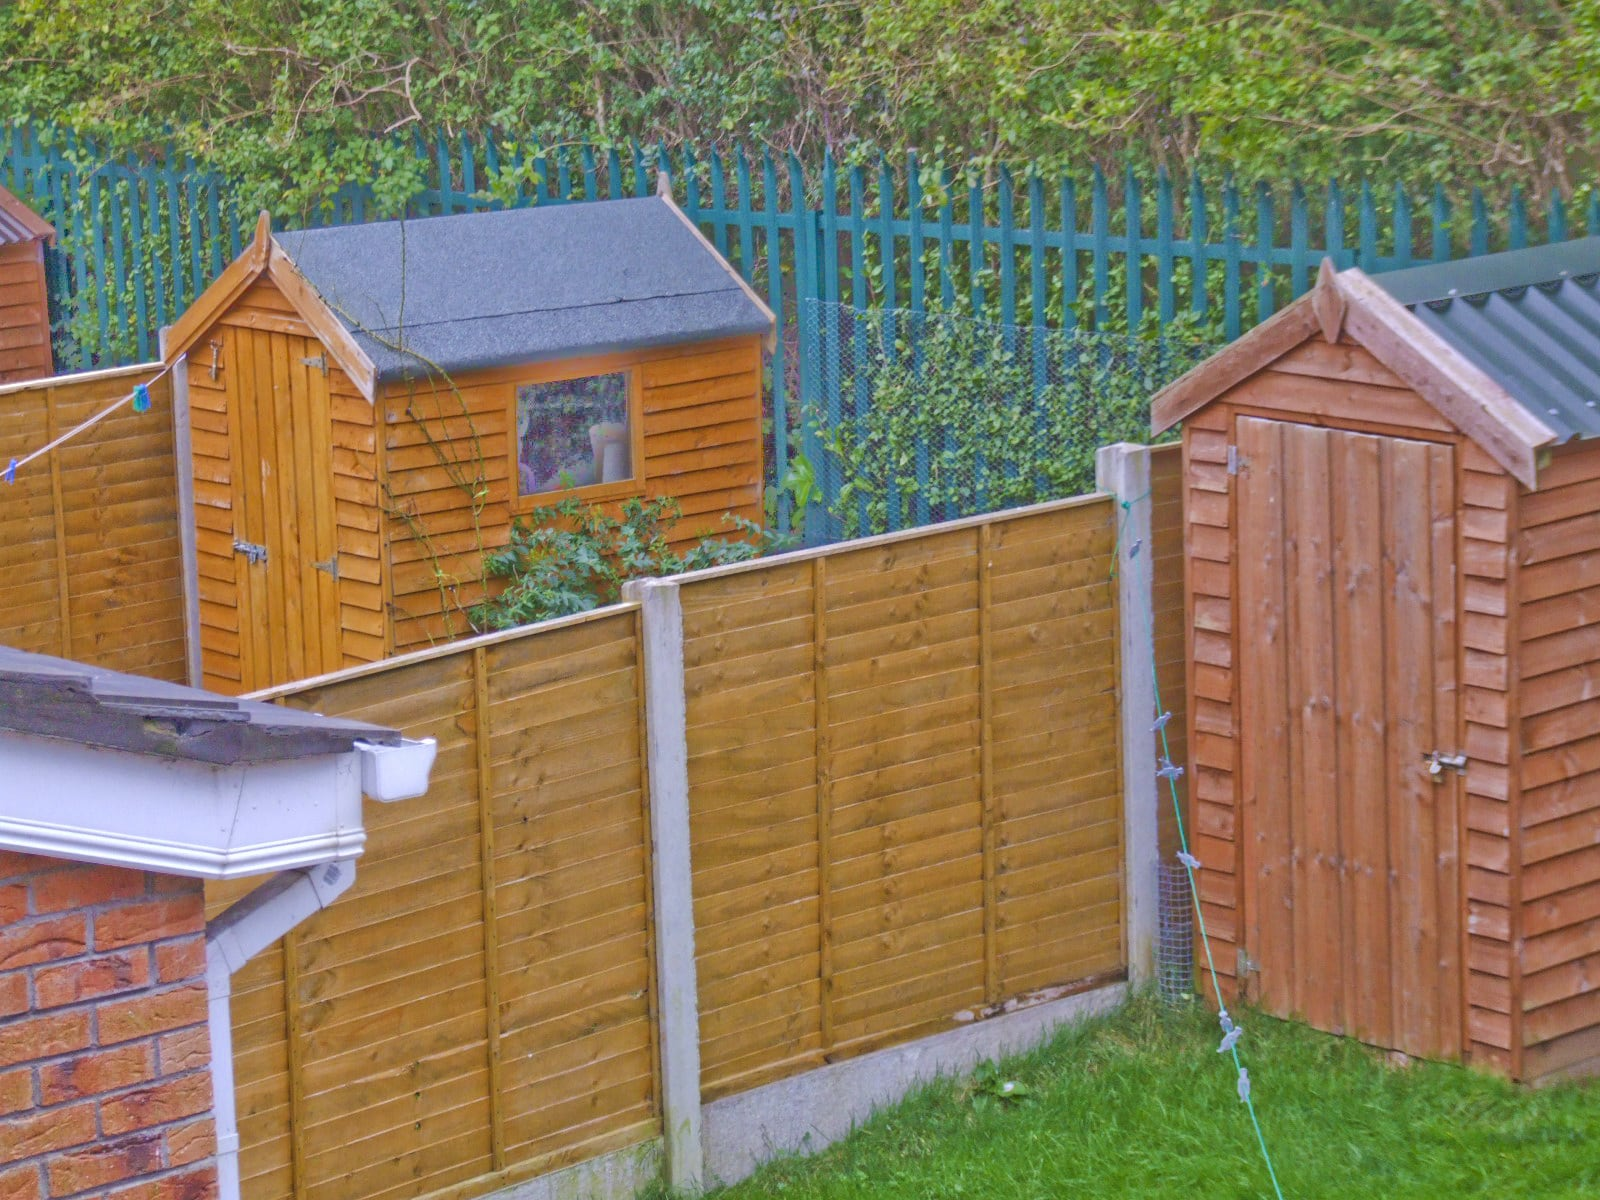 How to build a shed - Frank Key